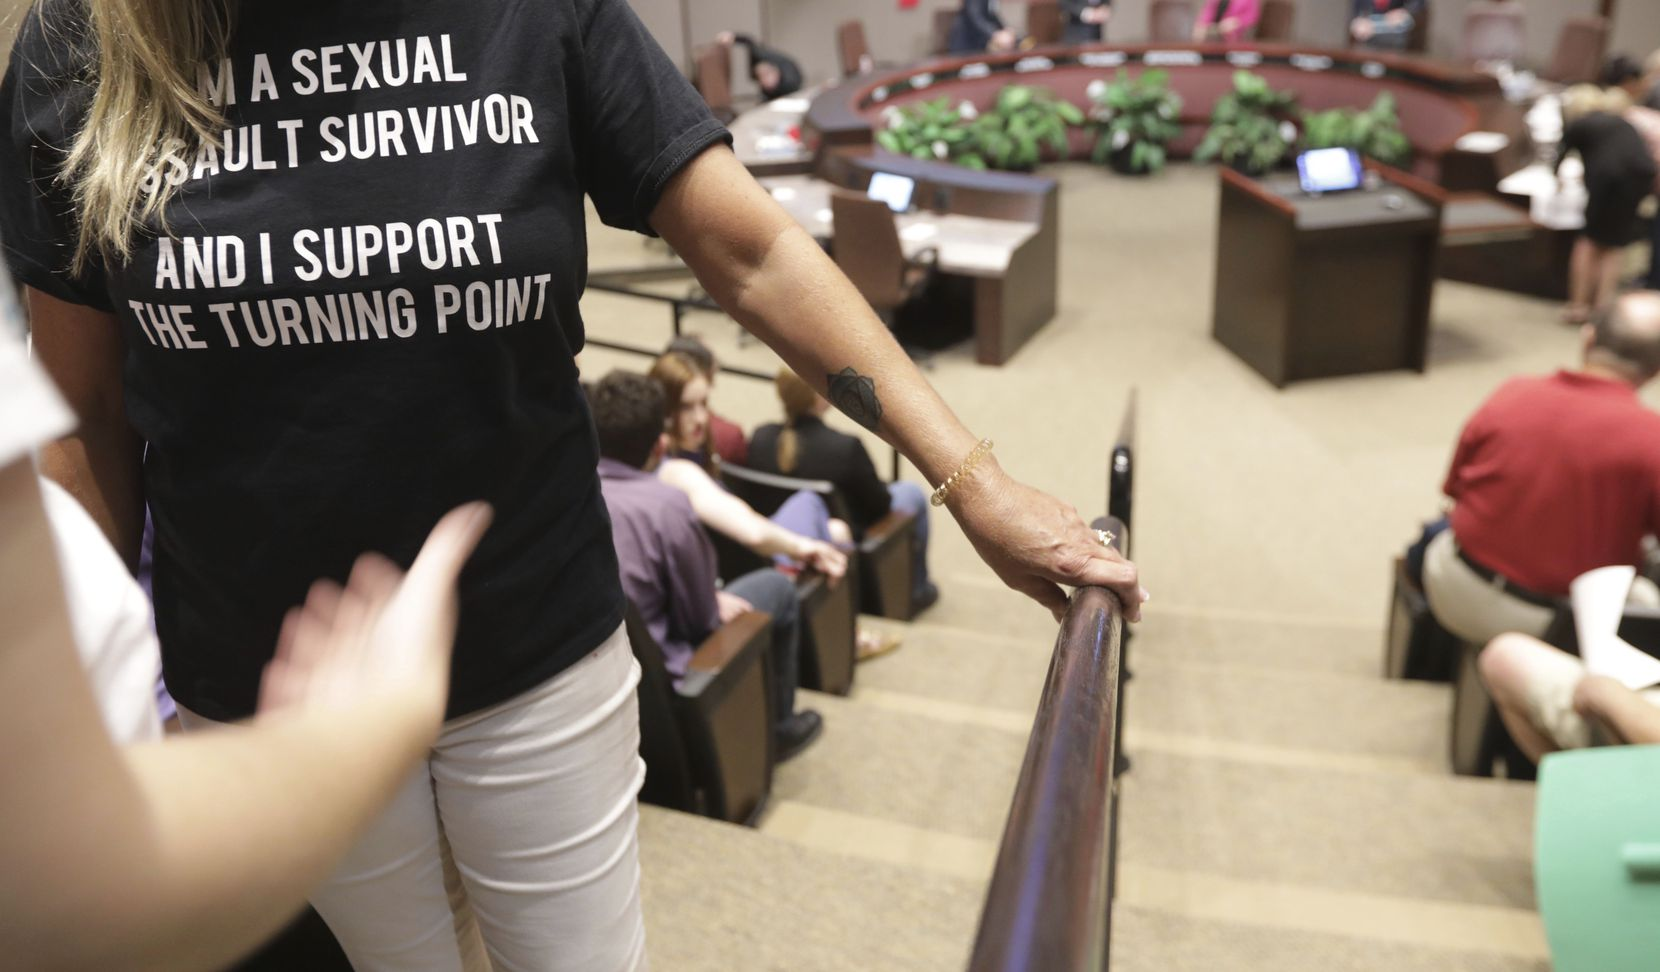 "A person wearing a t-shirt saying ""I am a sexual assault survivor"" waits to speaks in support of The Turning Point rape crisis center, during the Plano City Council meeting on Monday, Aug. 12, 2019 in Plano, Texas."